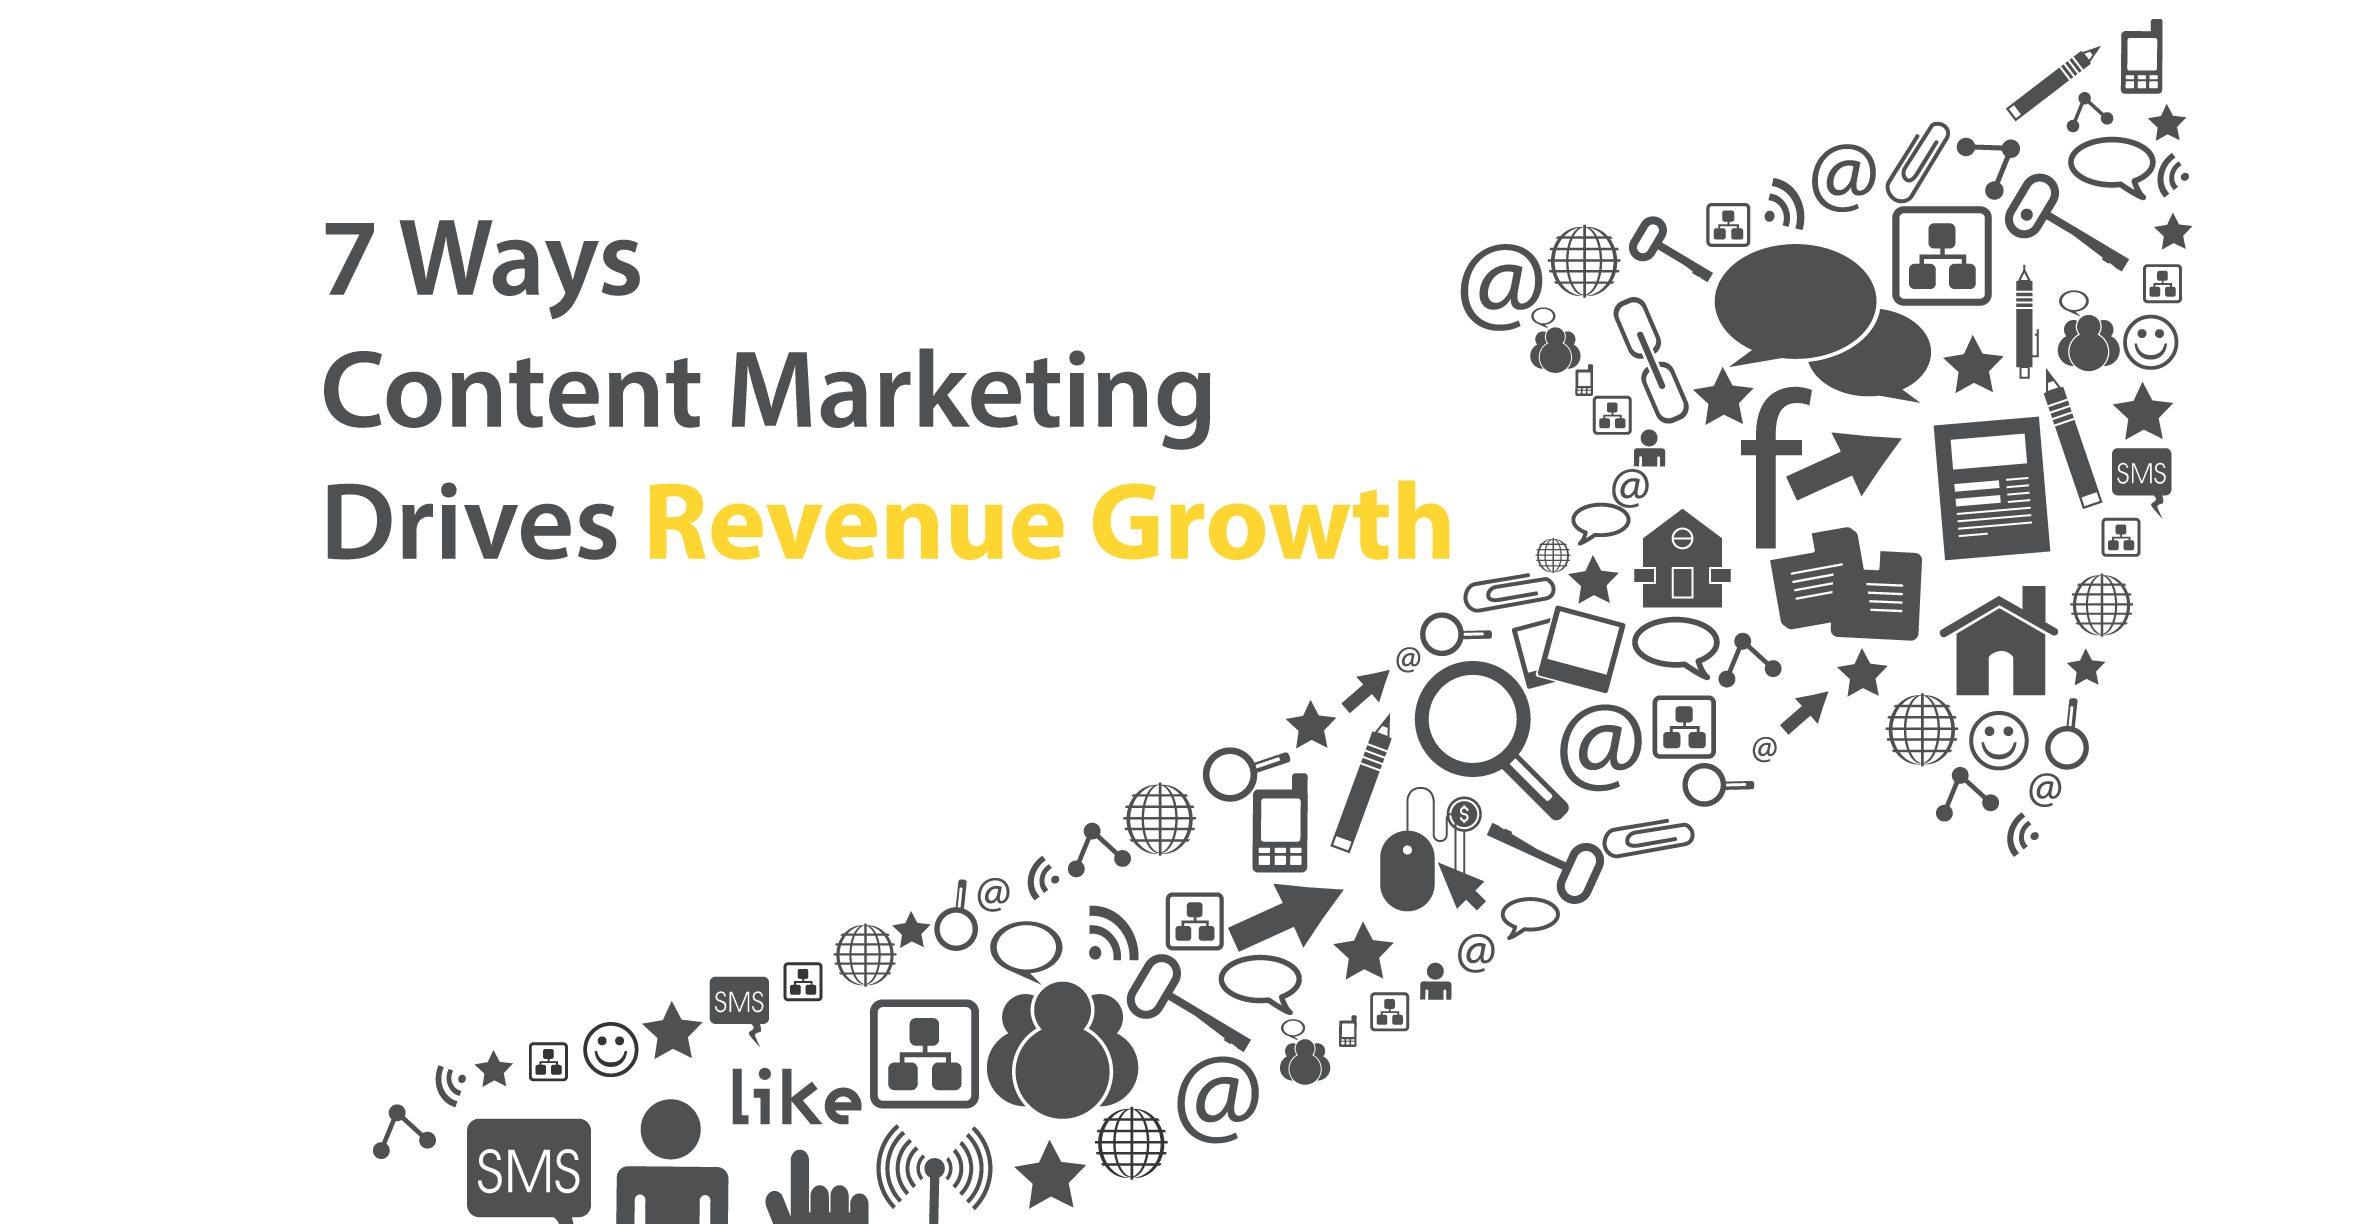 7 Ways Content Marketing Drives Revenue Growth